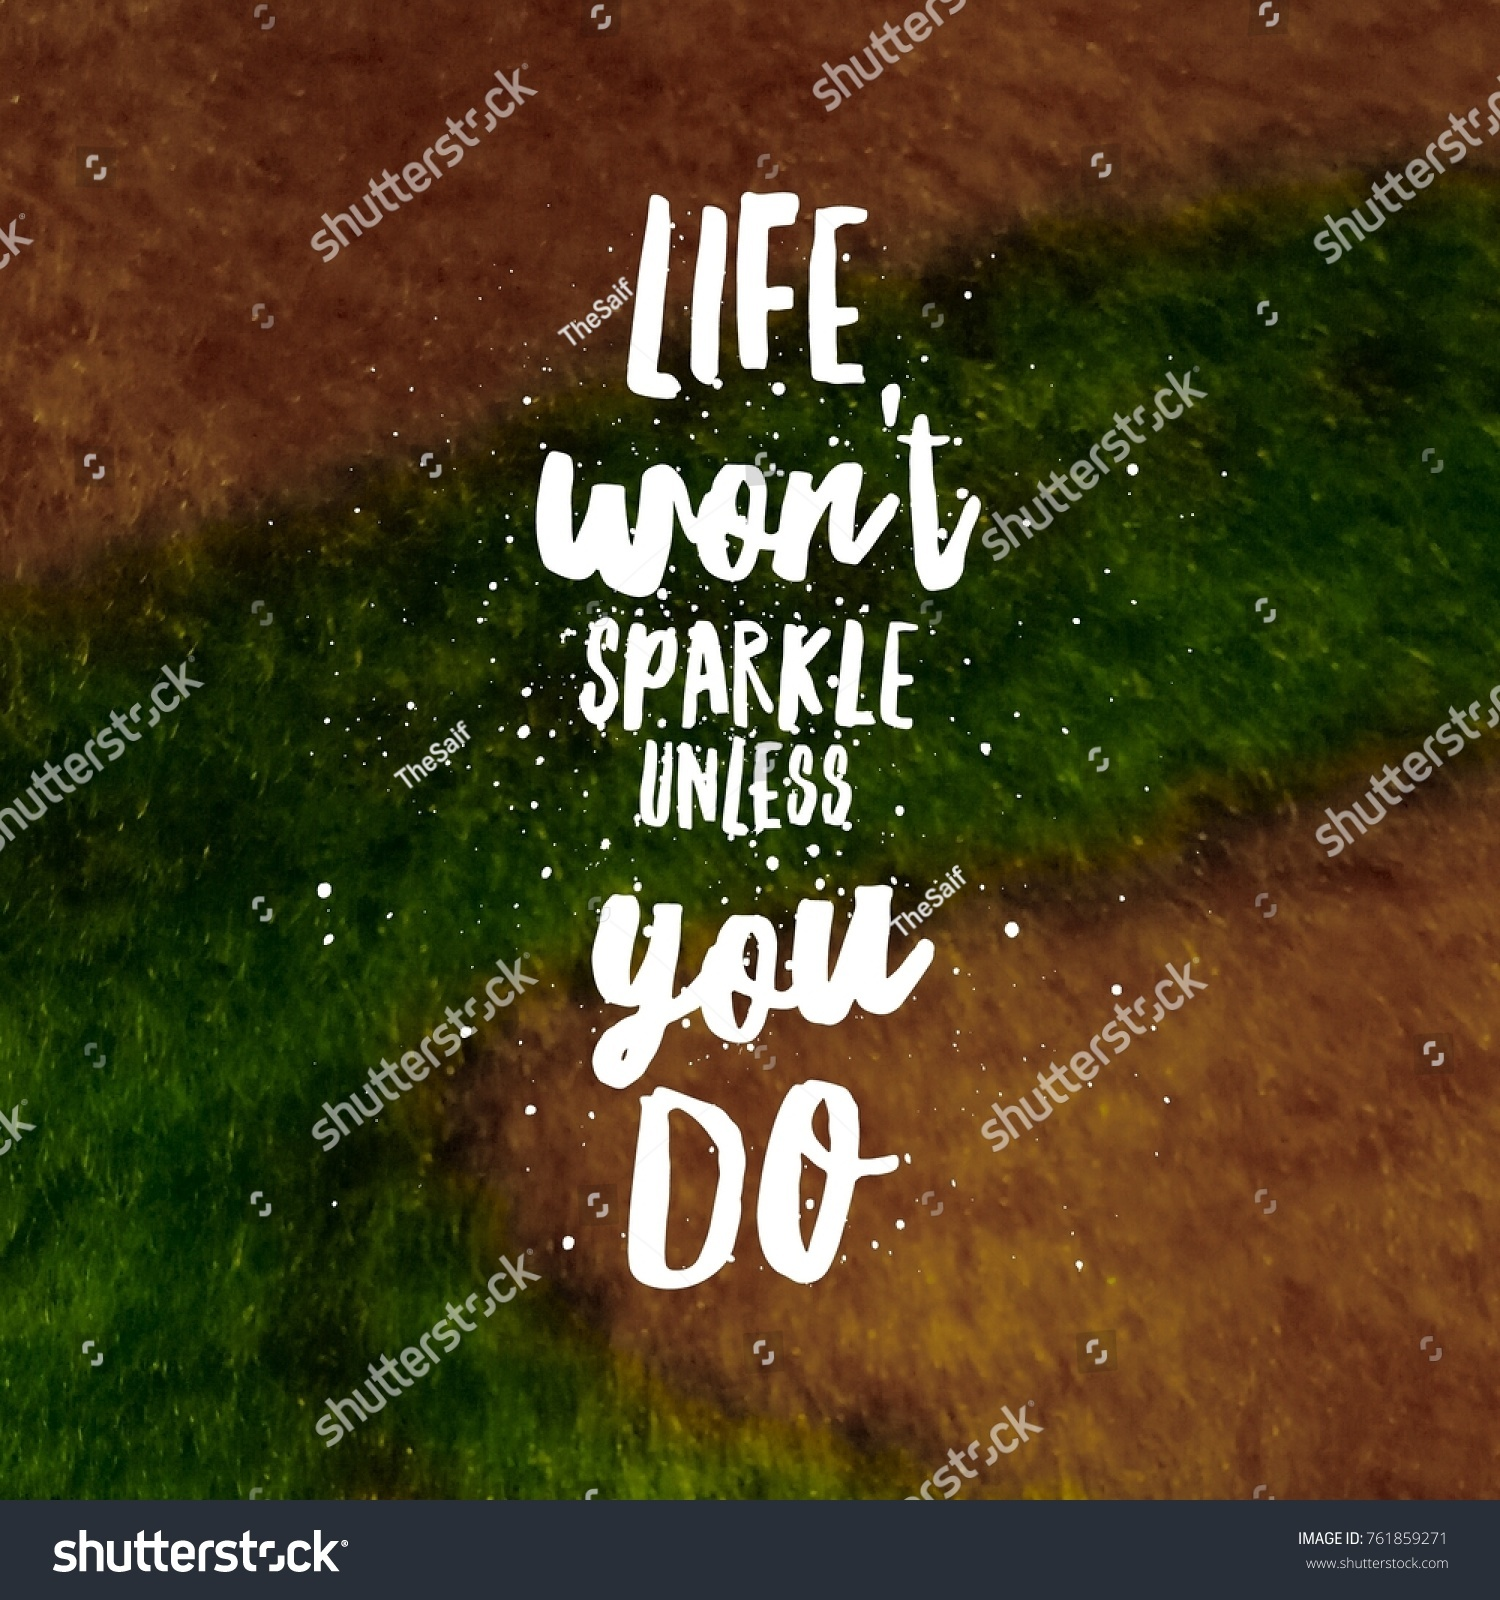 Natural Life Quotes Inspirational Motivational Quotes Positive Life Stock Photo